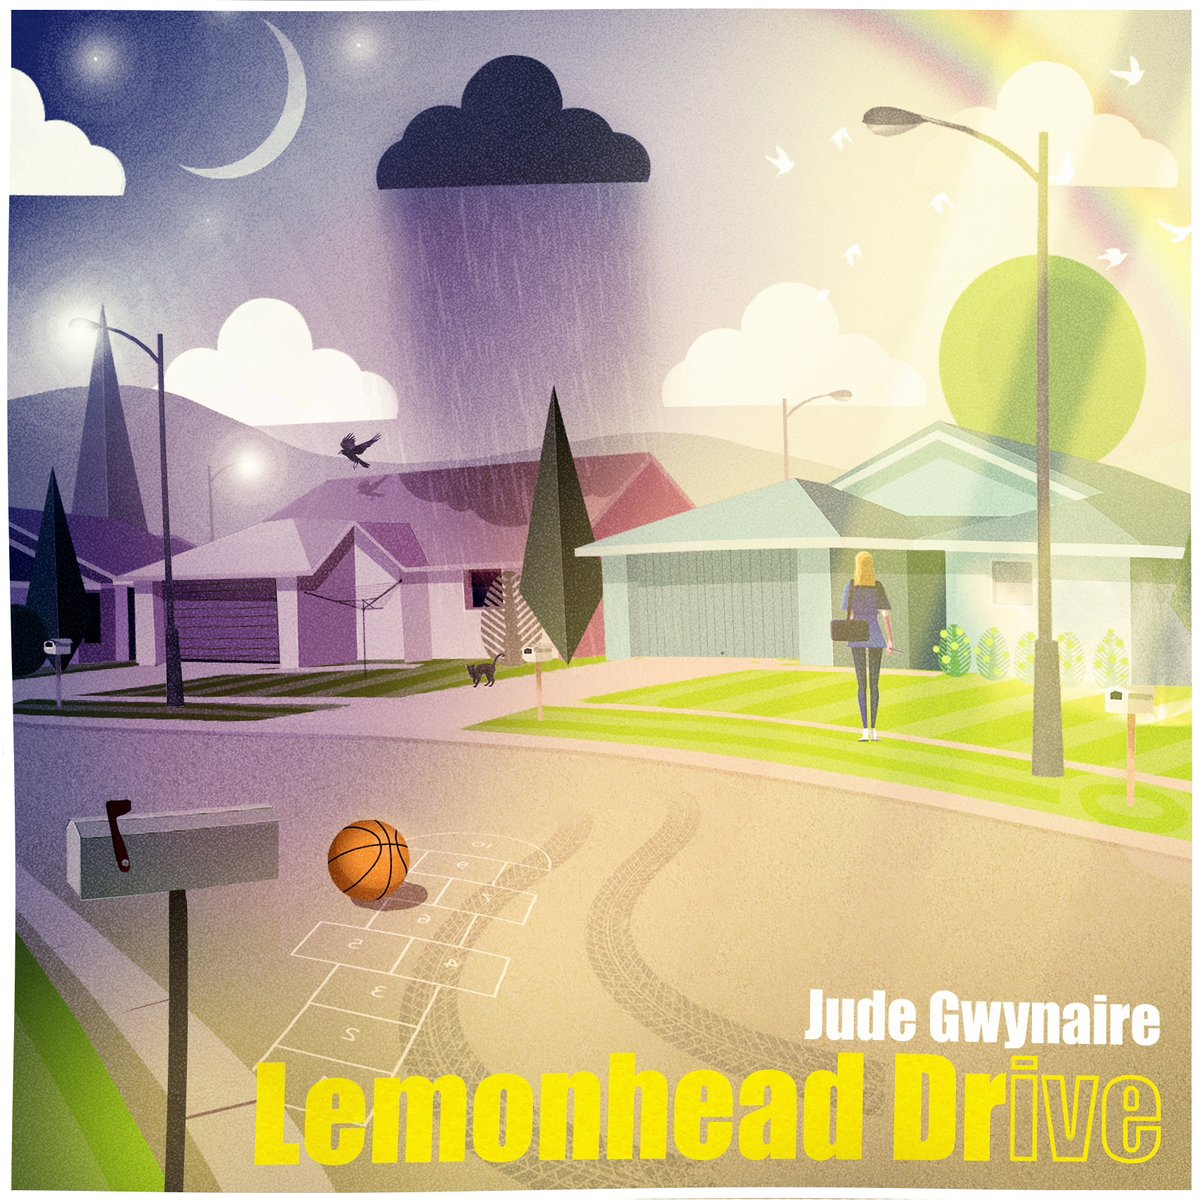 Here's a review of my 27 track album 'Lemonhead Drive' by @skopemag 🎹🎸🎧🌄🍋🌵   #music #NewMusic2021 #conceptalbum #electronica #rockmusic #ambientmusic #USA #soundscapes #guitar #musician #composer #musicislife #musicismagic 🎼